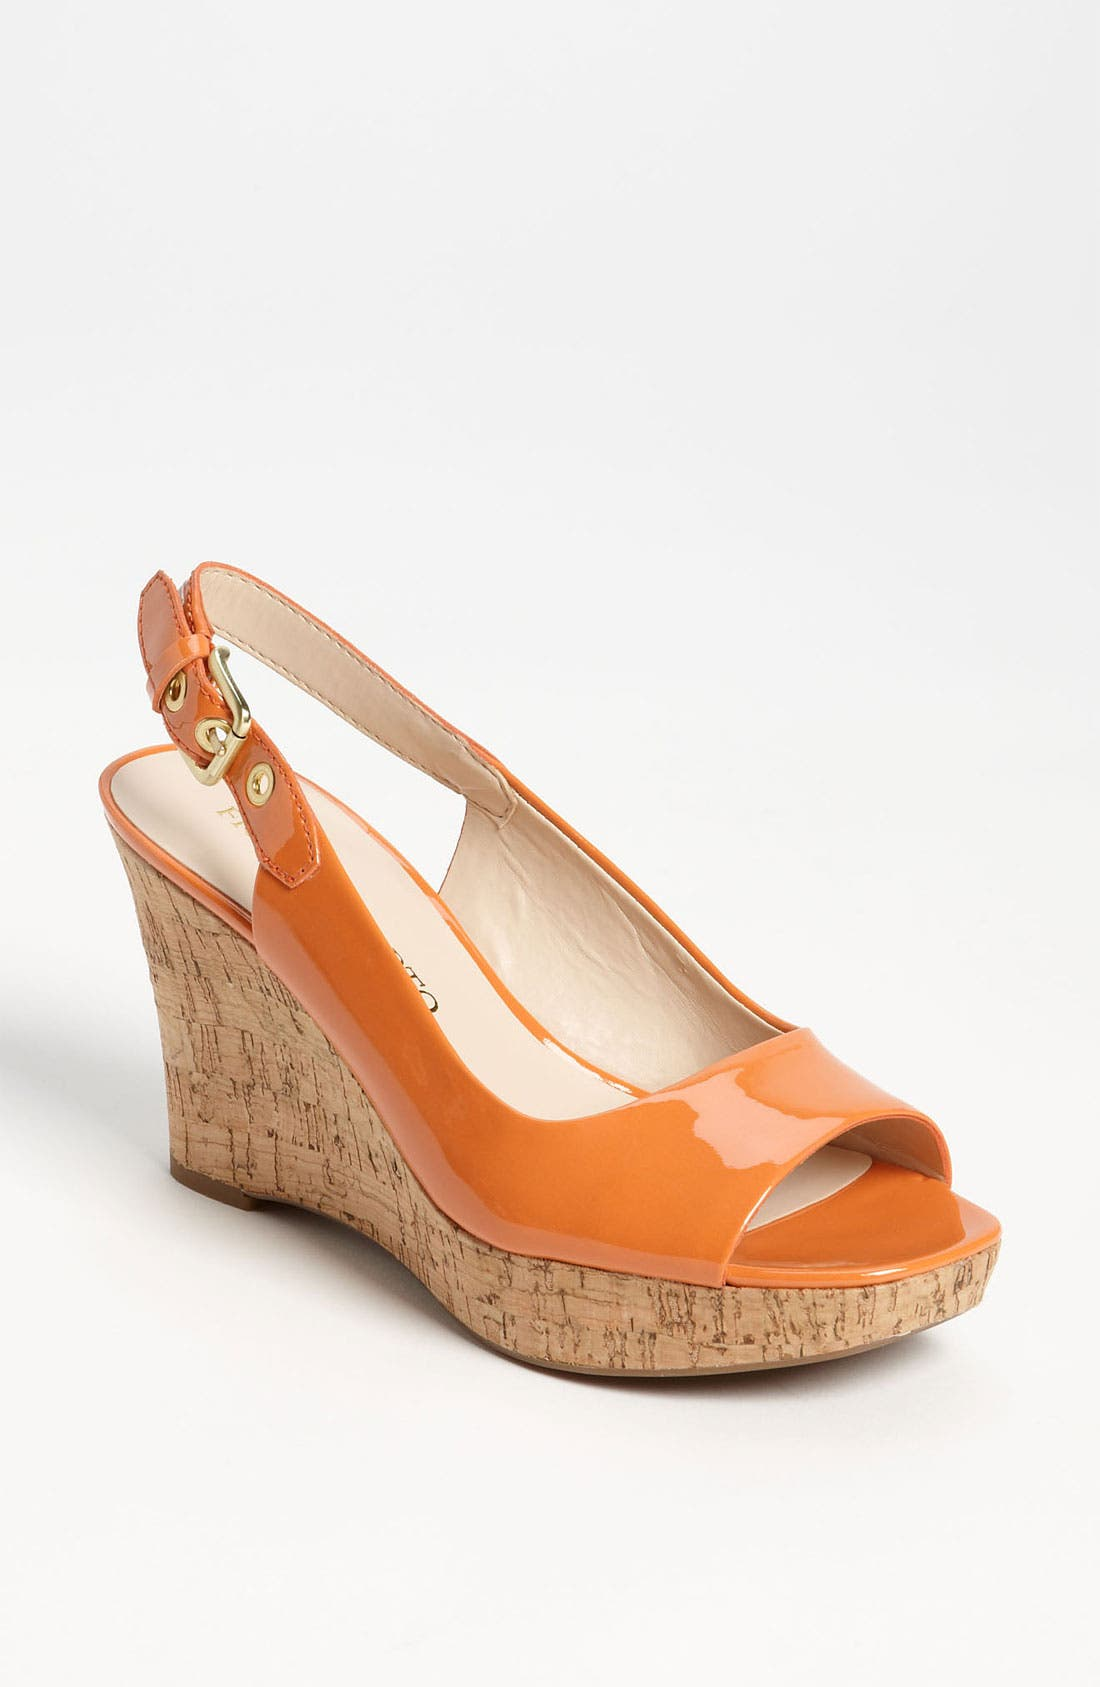 Alternate Image 1 Selected - Franco Sarto 'Colley' Wedge Sandal